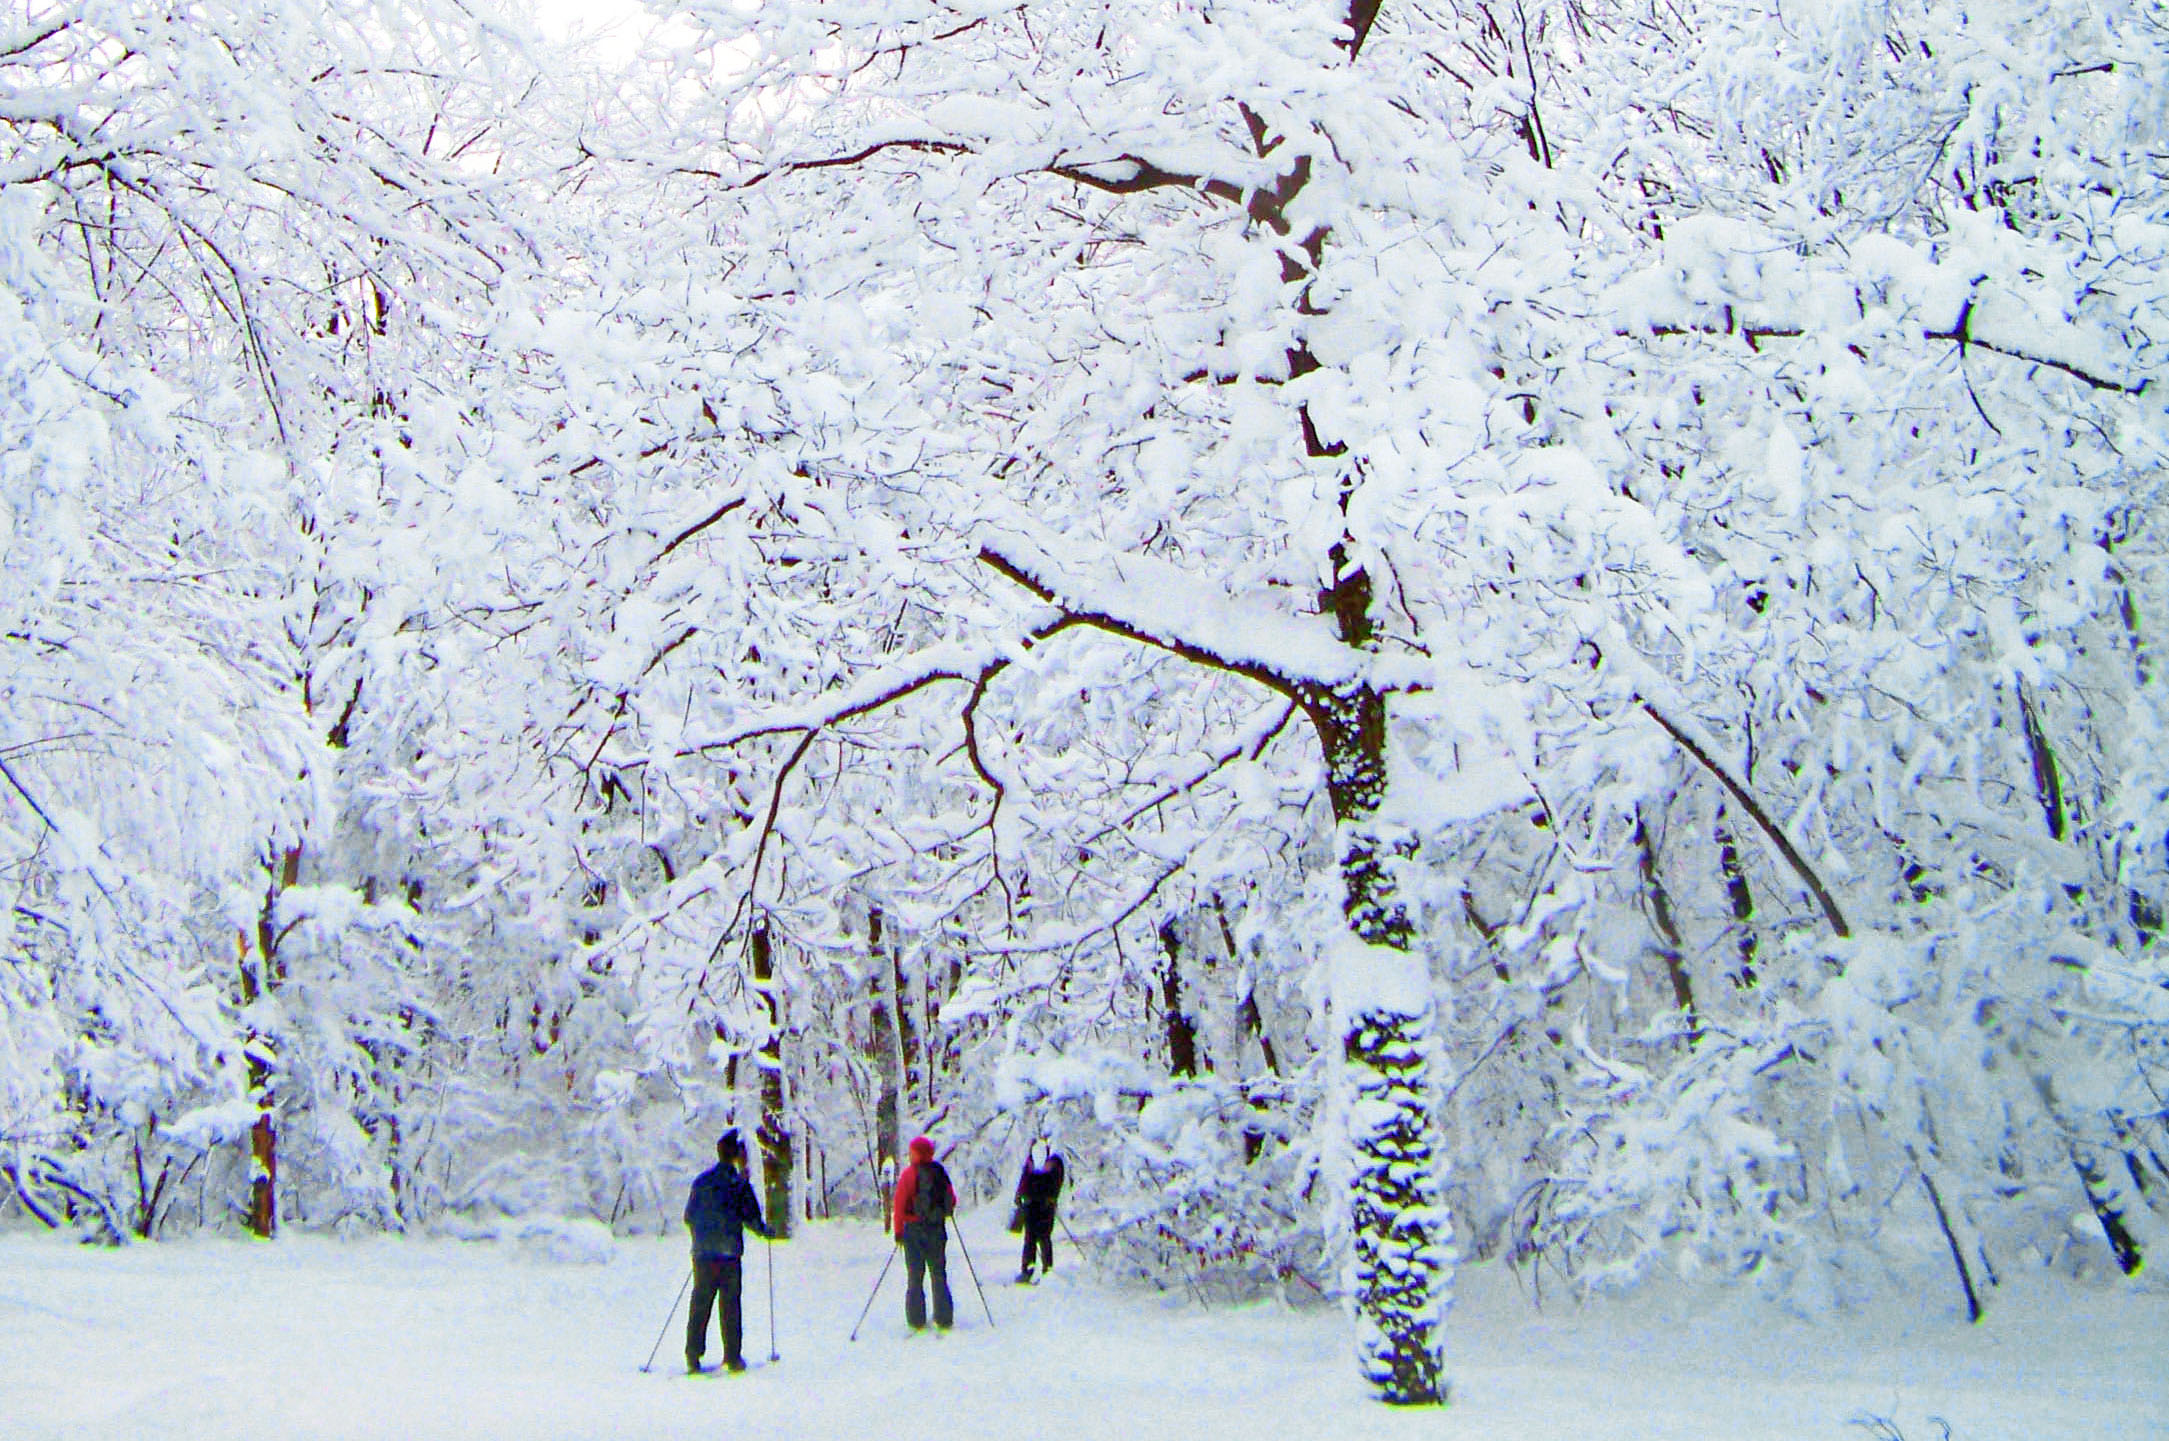 Three people cross country skiing in a snow covered landscape